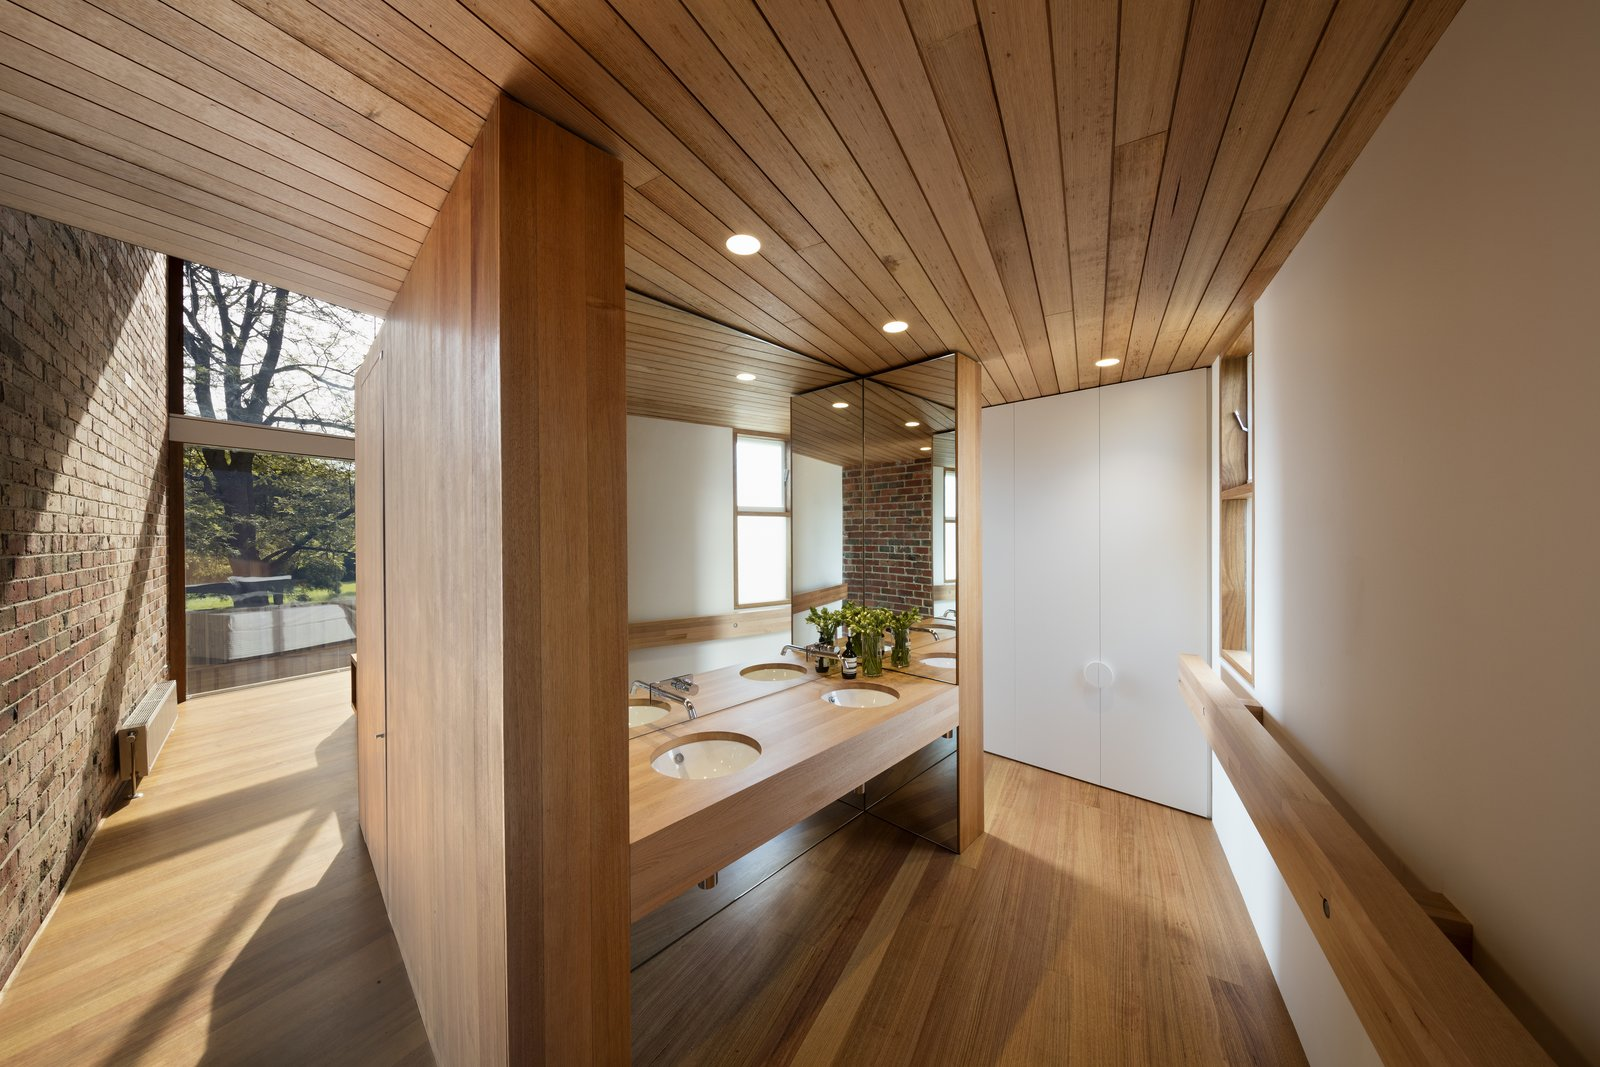 The private areas are separated, but visually connected to the new living area.